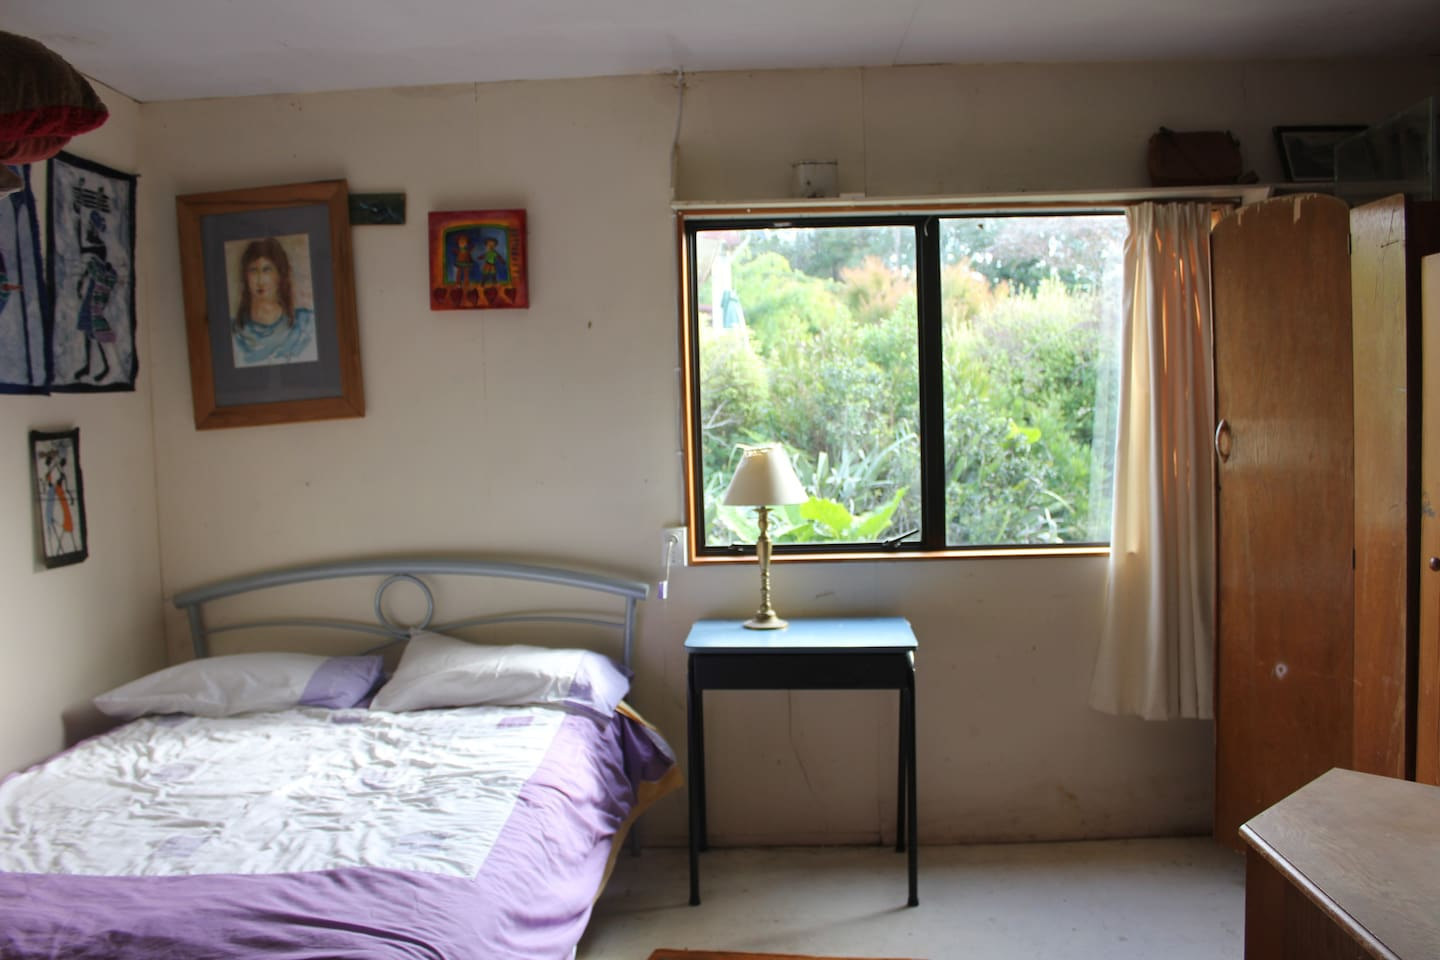 Queen bed in private space separated from dormitory and living area by cupboards